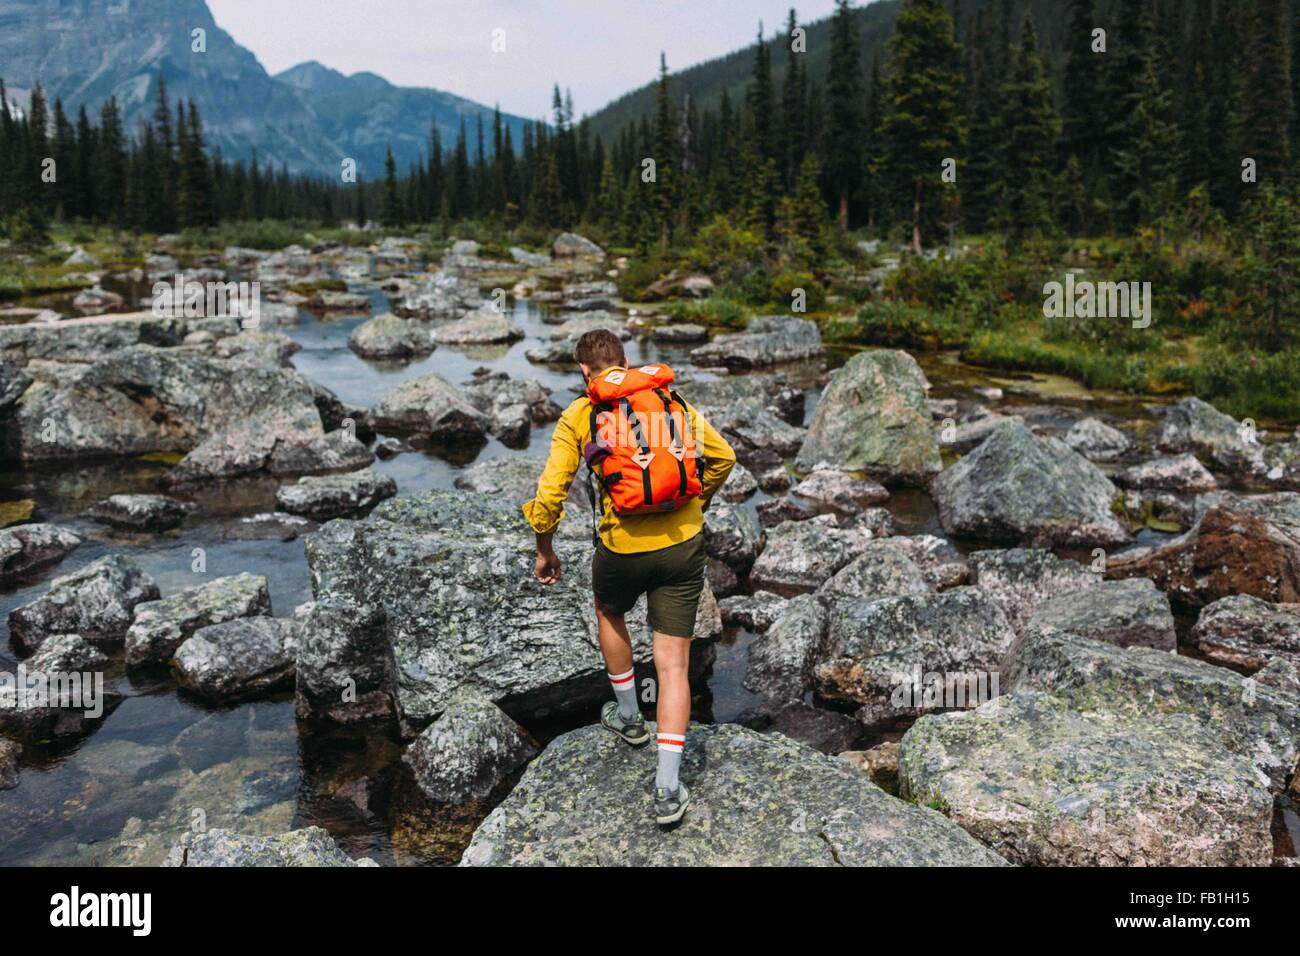 Rear view of mid adult man carrying backpack walking on rocky riverbed, Moraine lake, Banff National Park, Alberta - Stock Image